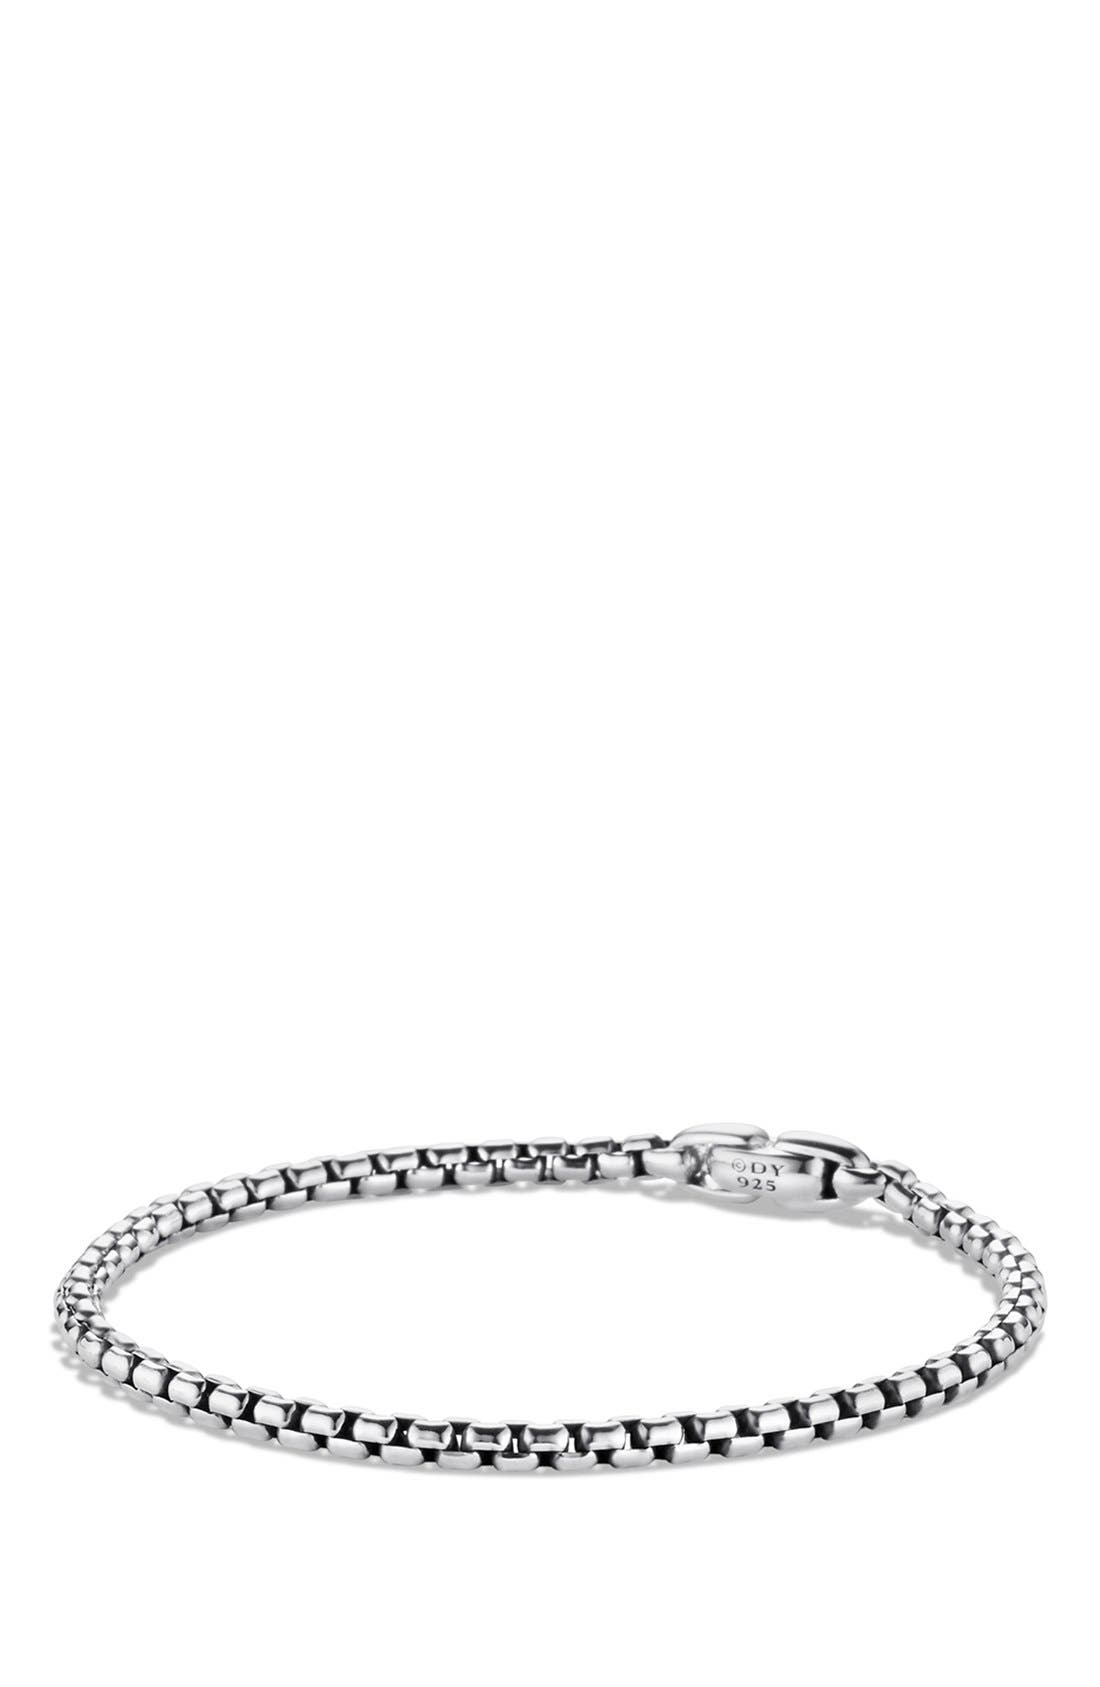 David Yurman 'Chain' Medium Box Chain Bracelet